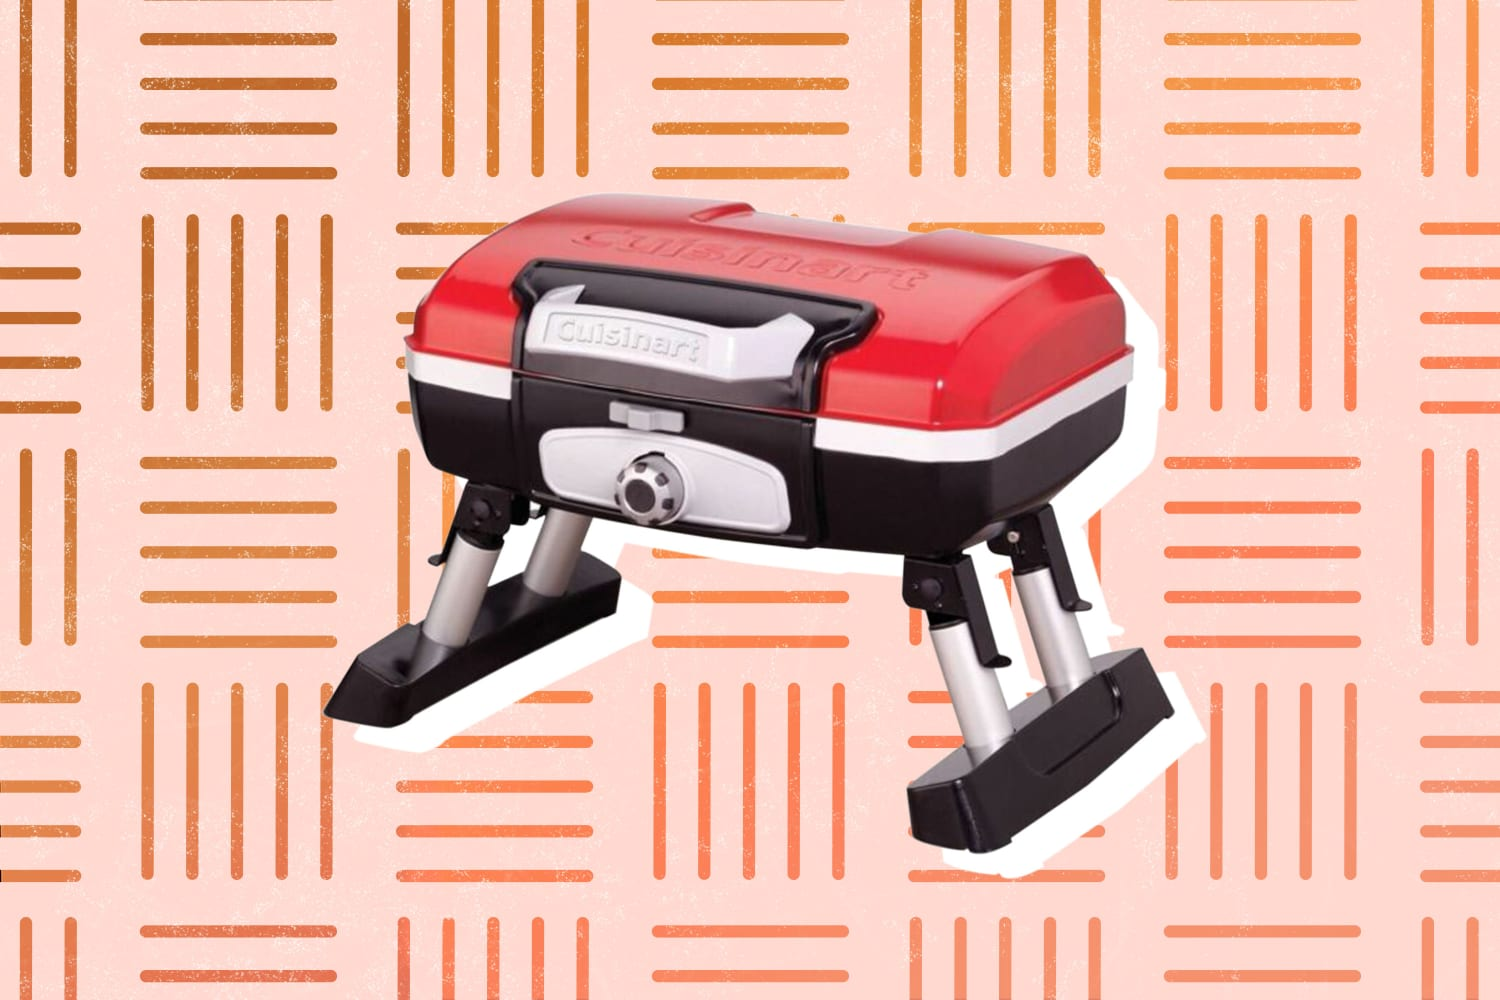 The Perfect Grill for Renters Exists, and It Feels Like Vacation Every Time I Use It